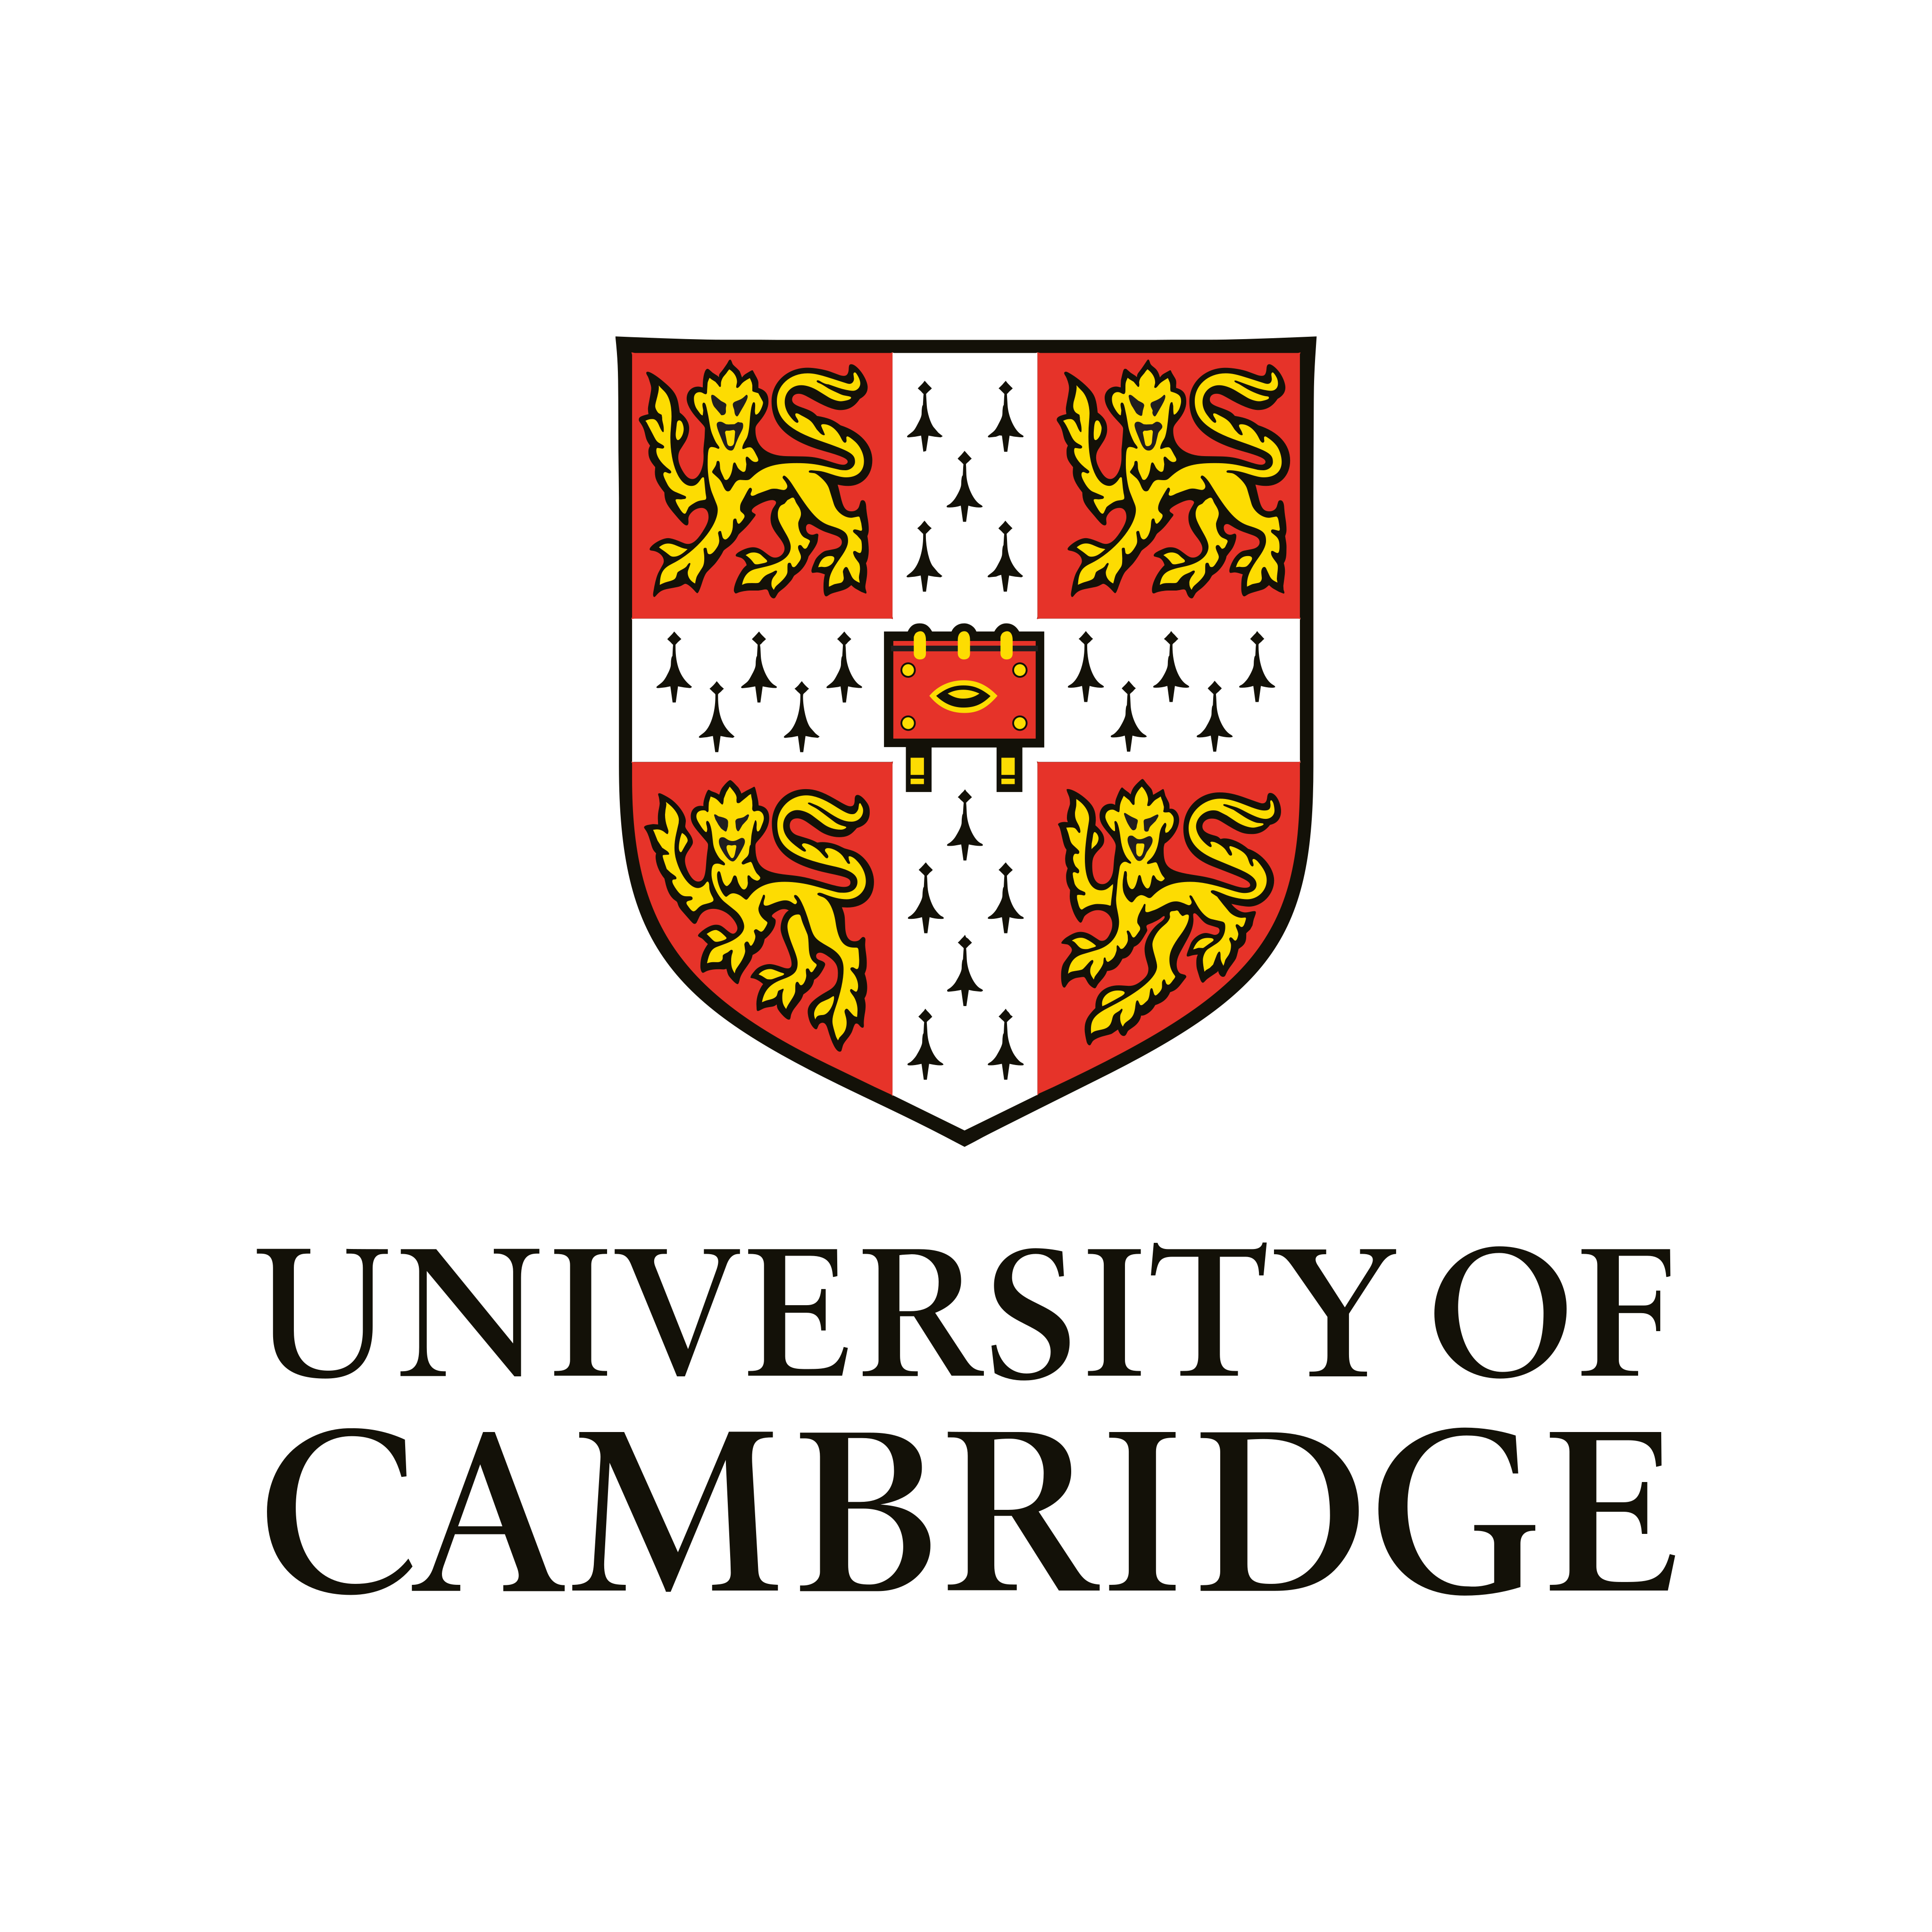 university of cambridge logo 0 - University of Cambridge Logo